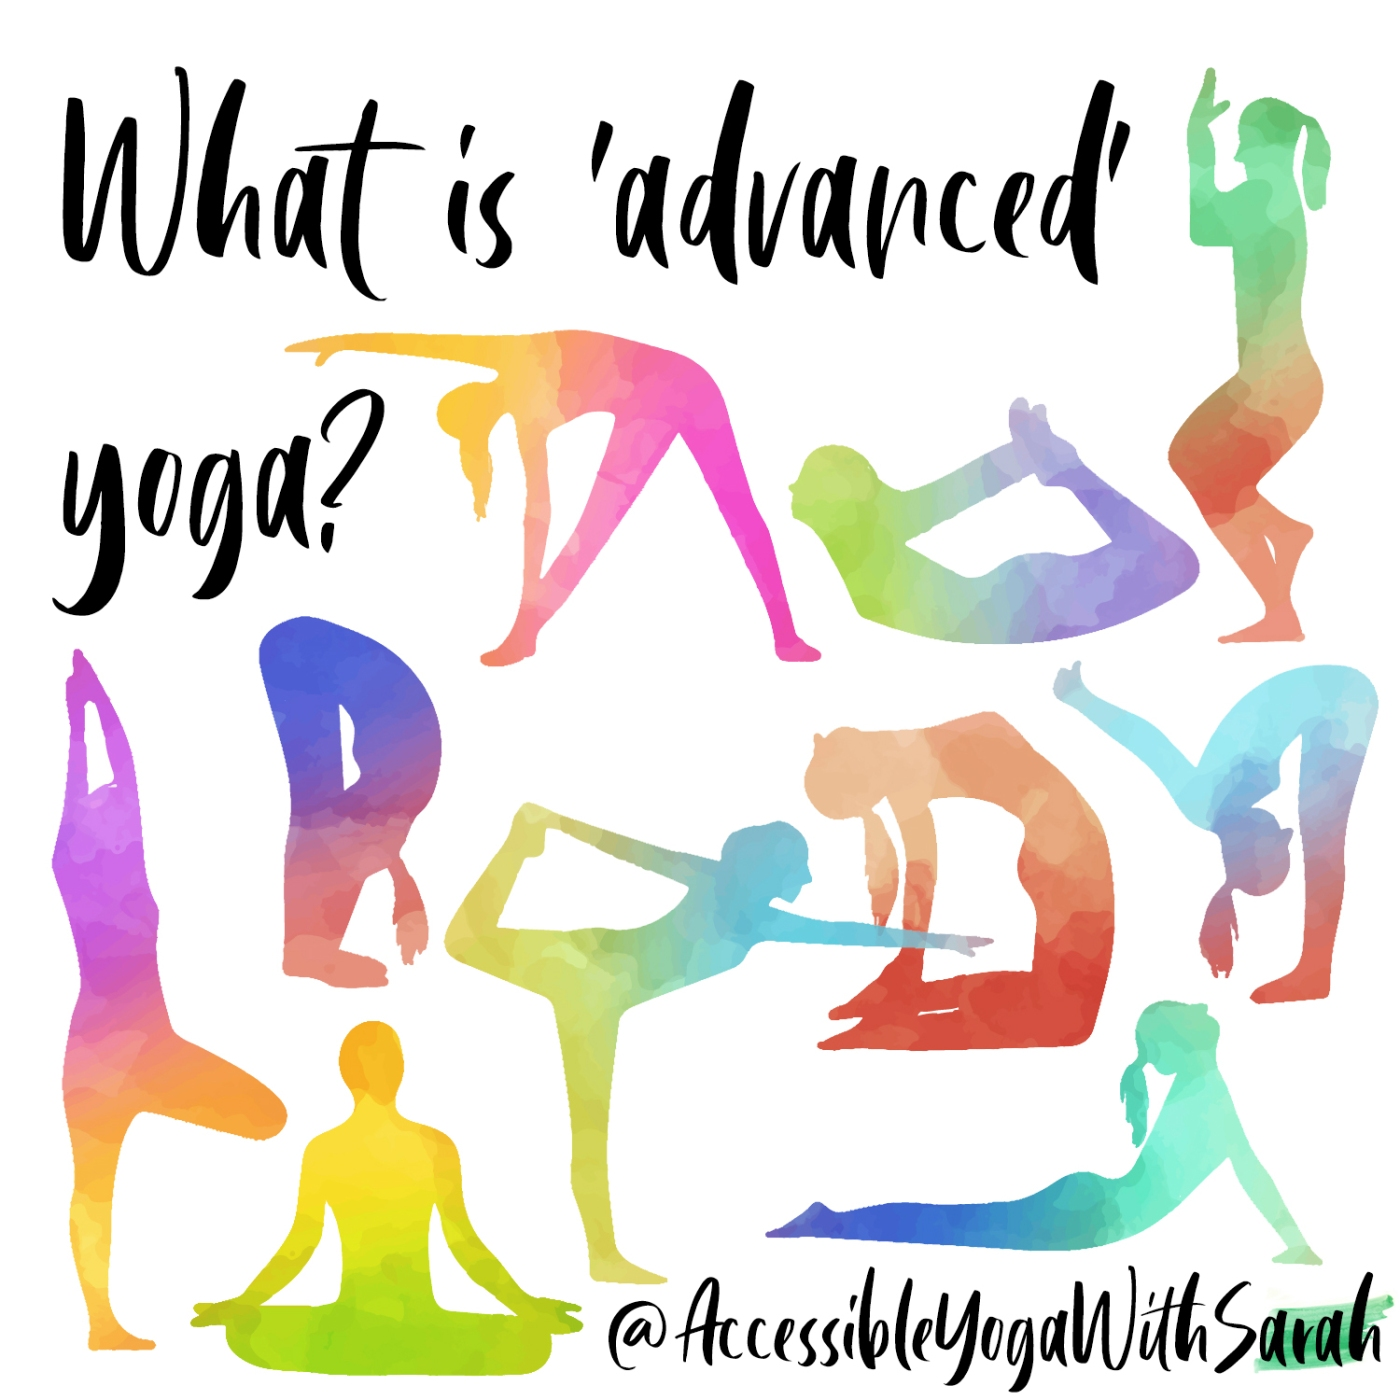 Watercolour images of yoga asana with the words 'What is 'advanced' yoga?'